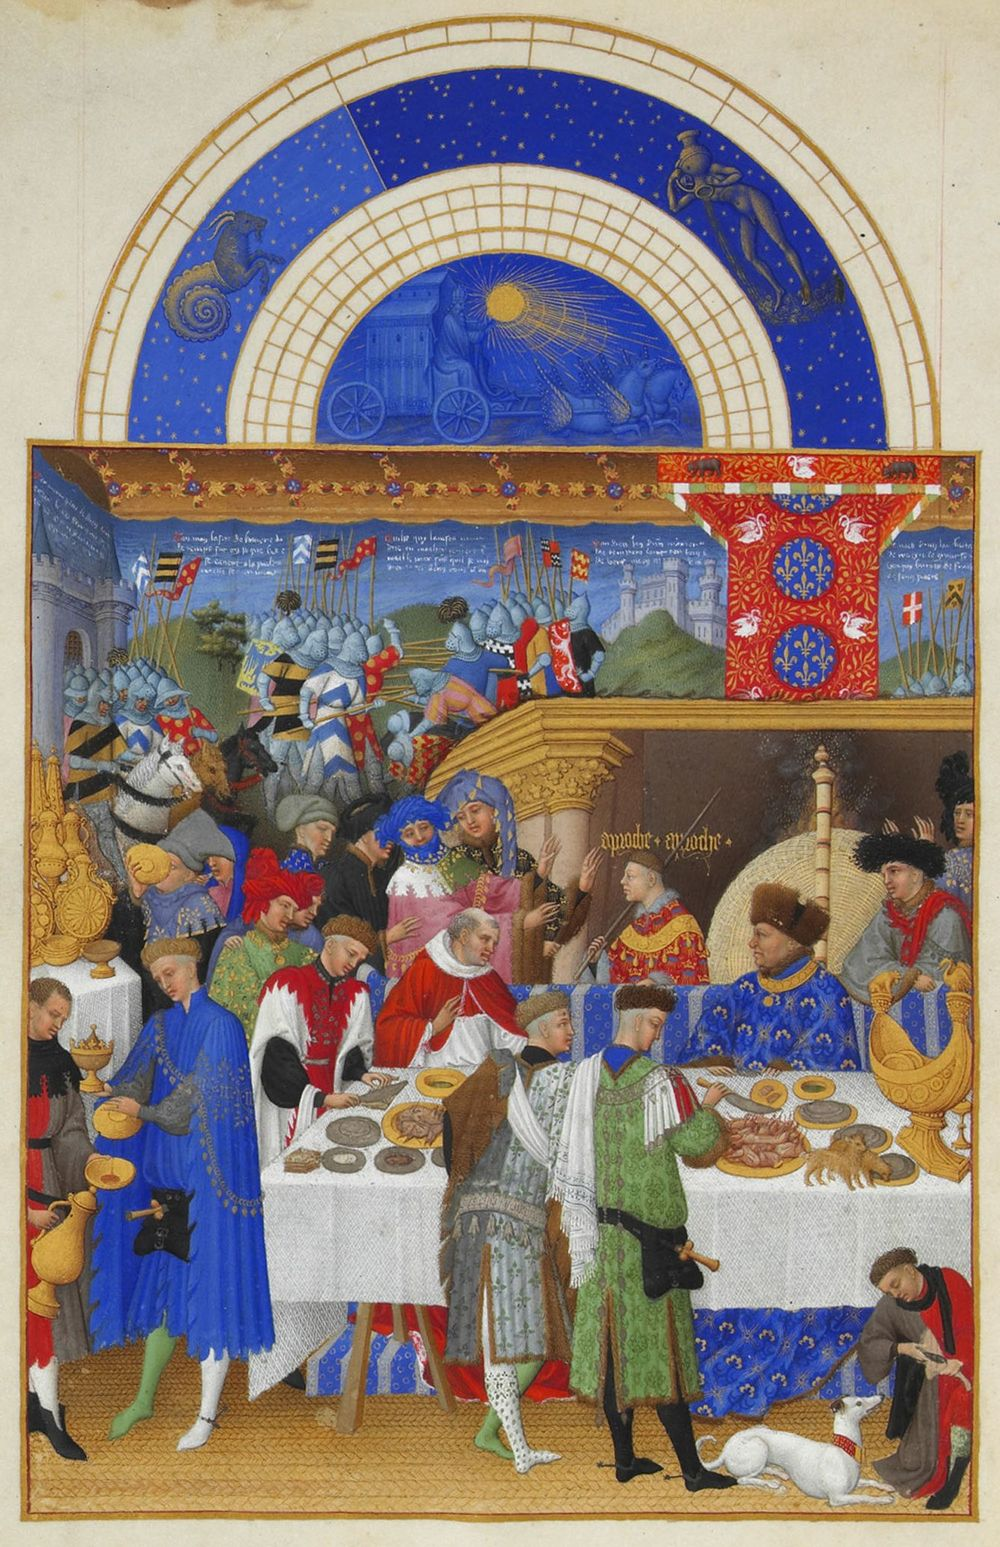 Très Riches Heures - Limbourg Brothers 1412, Janvier